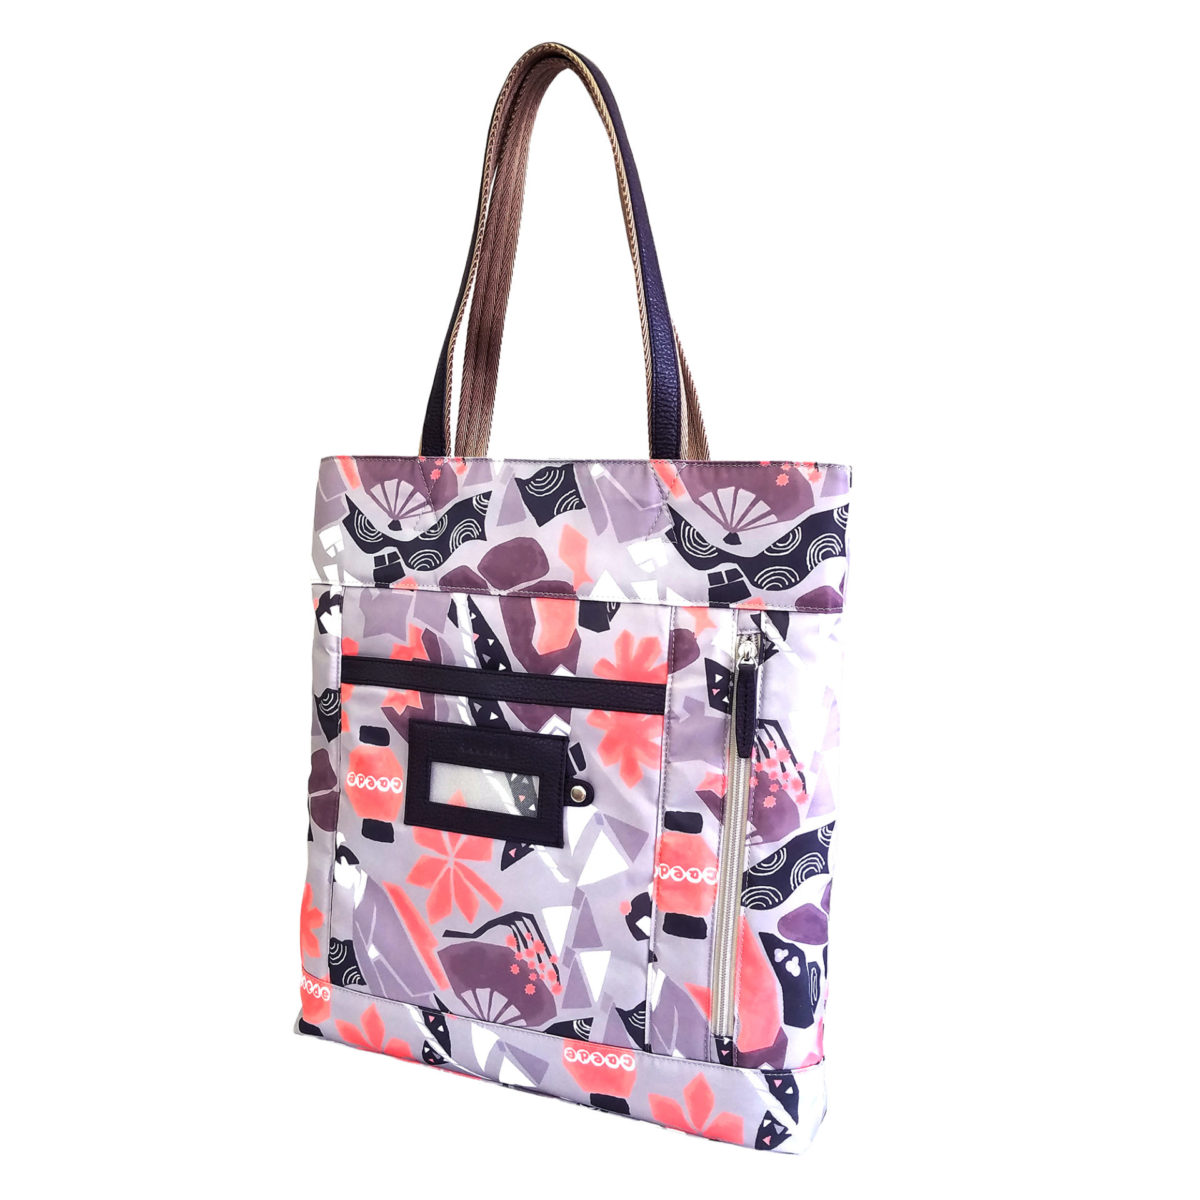 Maiko Puzzle Etna tote grey